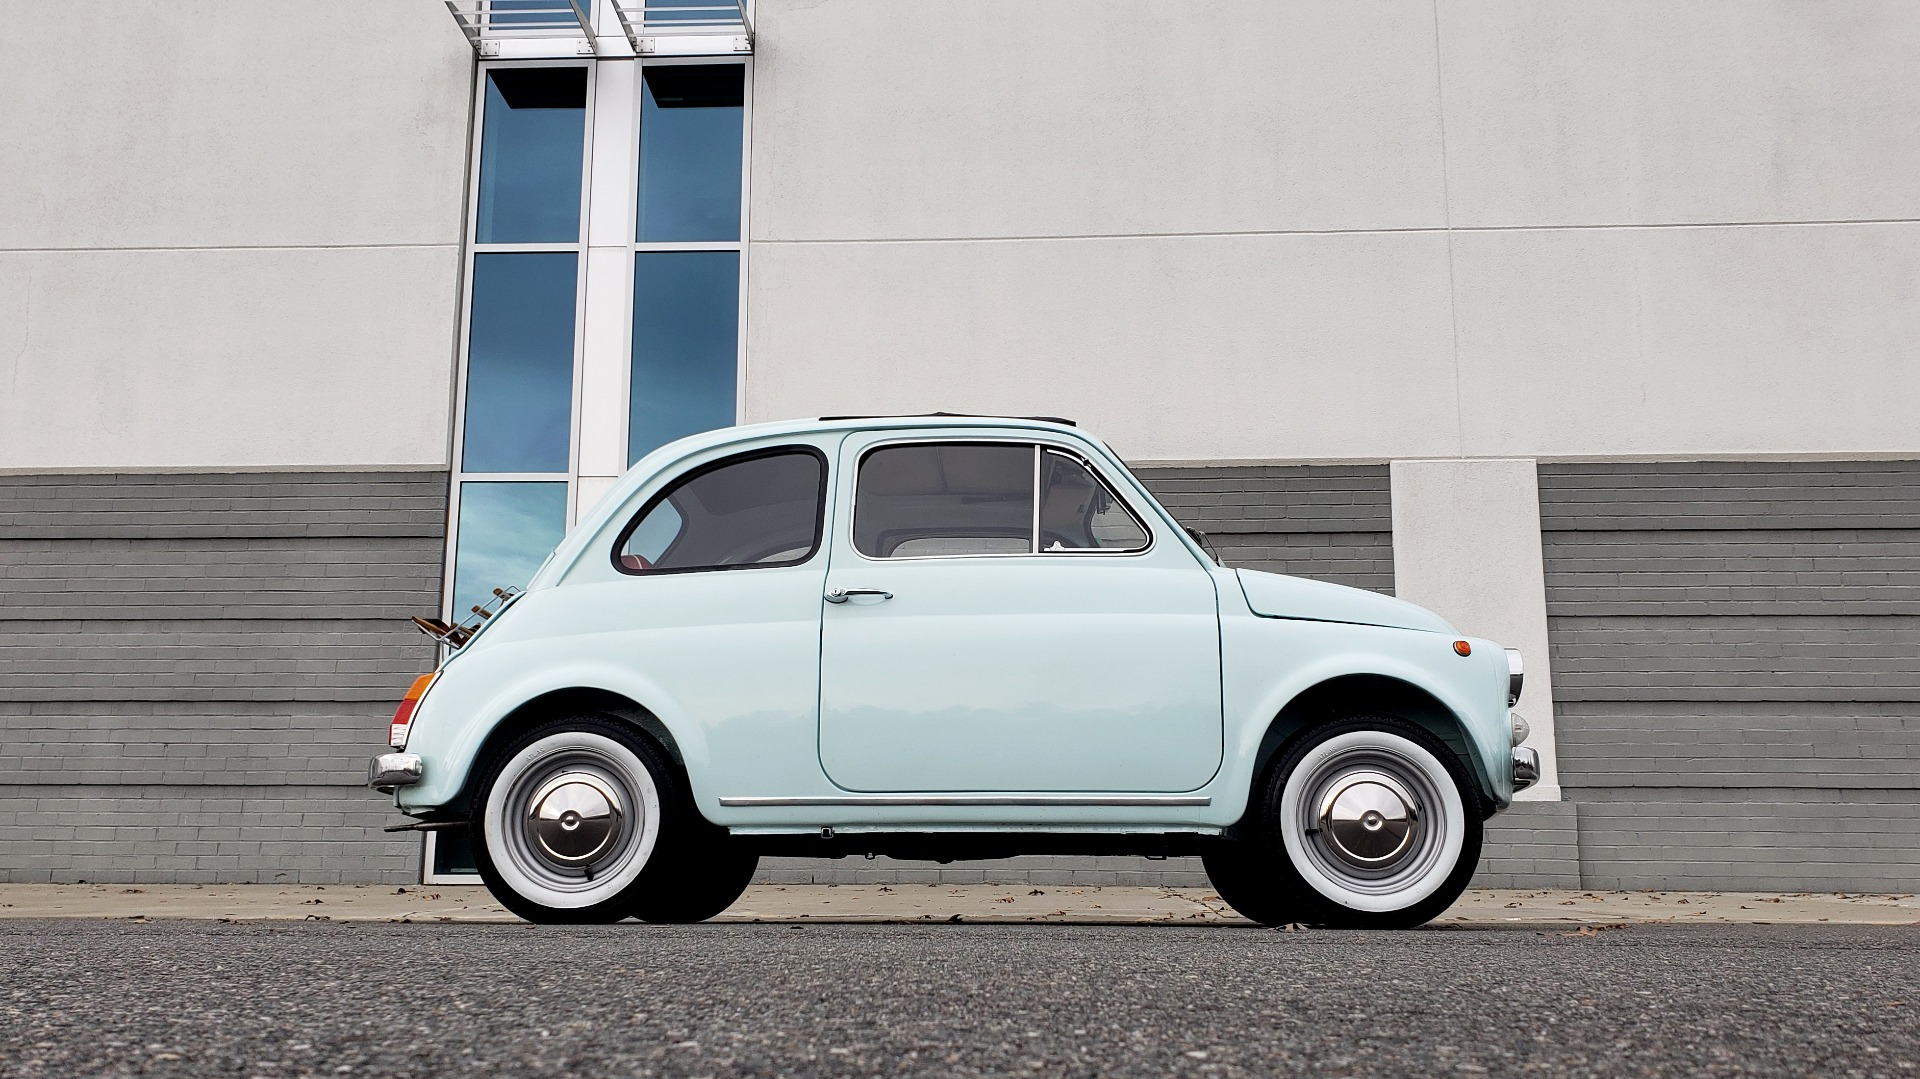 Used 1968 FIAT 500 NUOVA / SOFT-TOP / LUGGAGE RACK / RESTORED, LIKE NEW for sale $21,900 at Formula Imports in Charlotte NC 28227 7